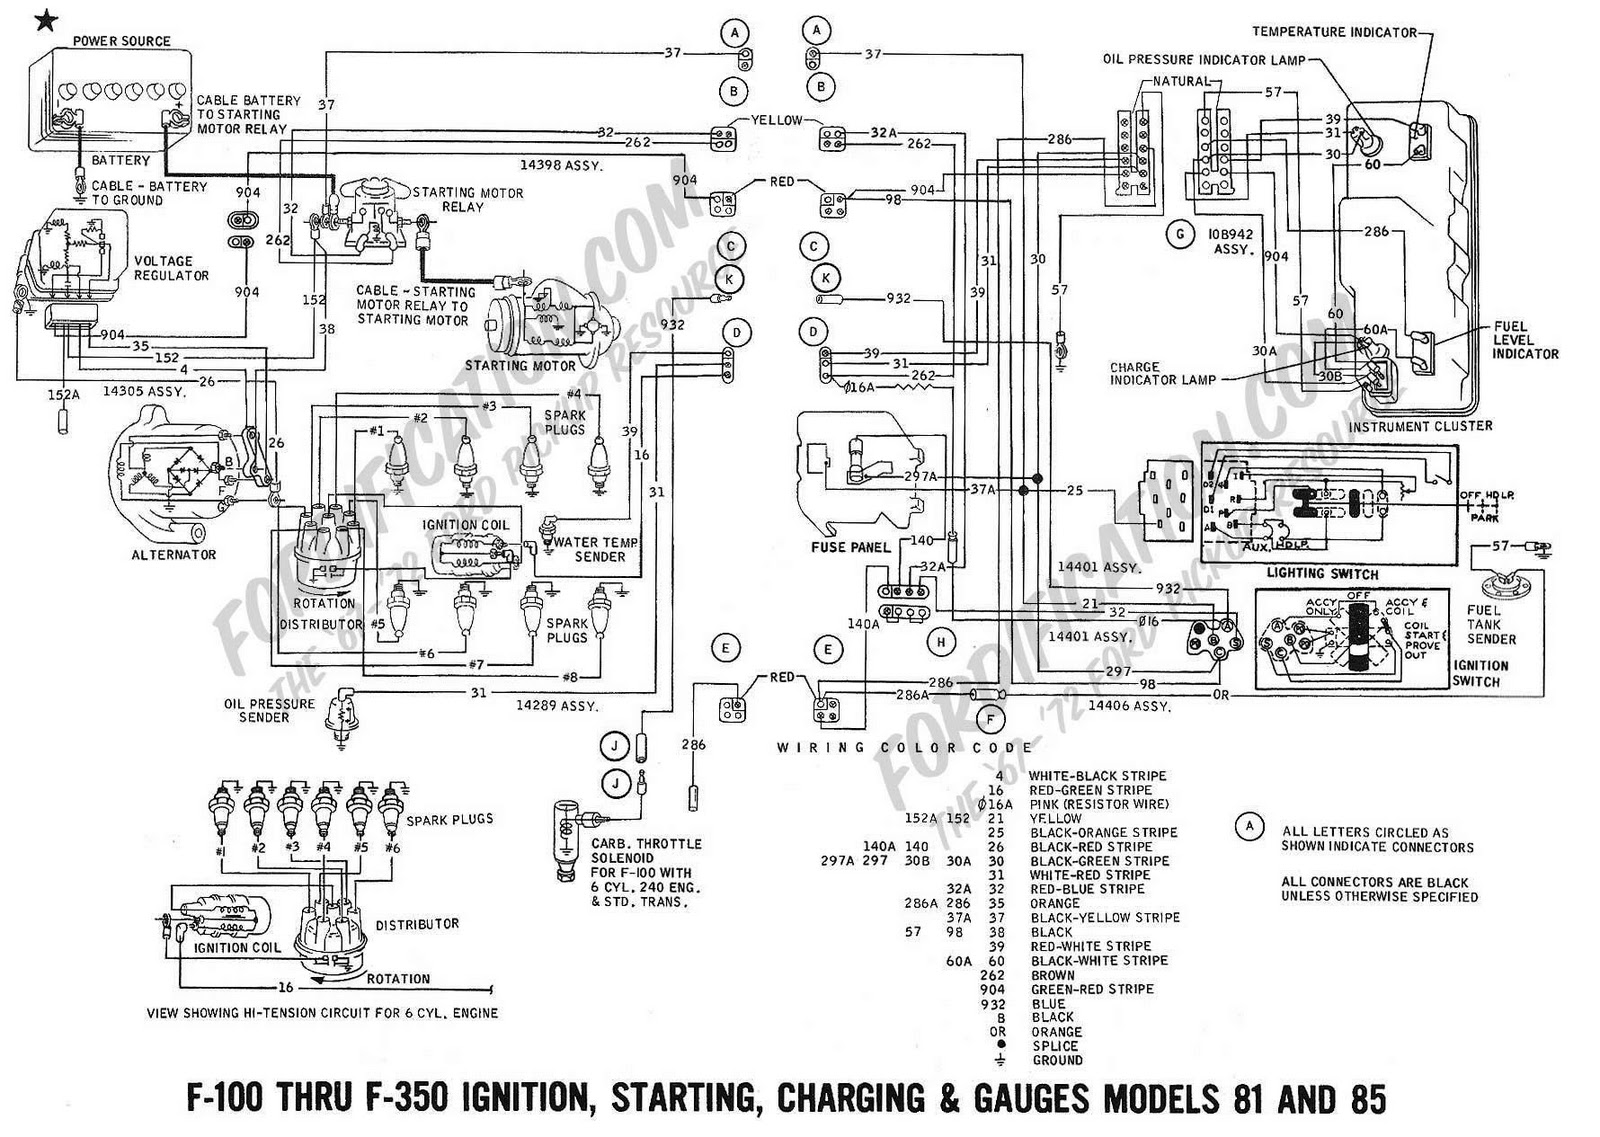 1964 Mustang Wiring Diagrams also 1979 C10 Wiring Diagram besides Discussion C11488 ds546441 as well Schematics h in addition Schematics h. on f100 turn signal wiring diagram